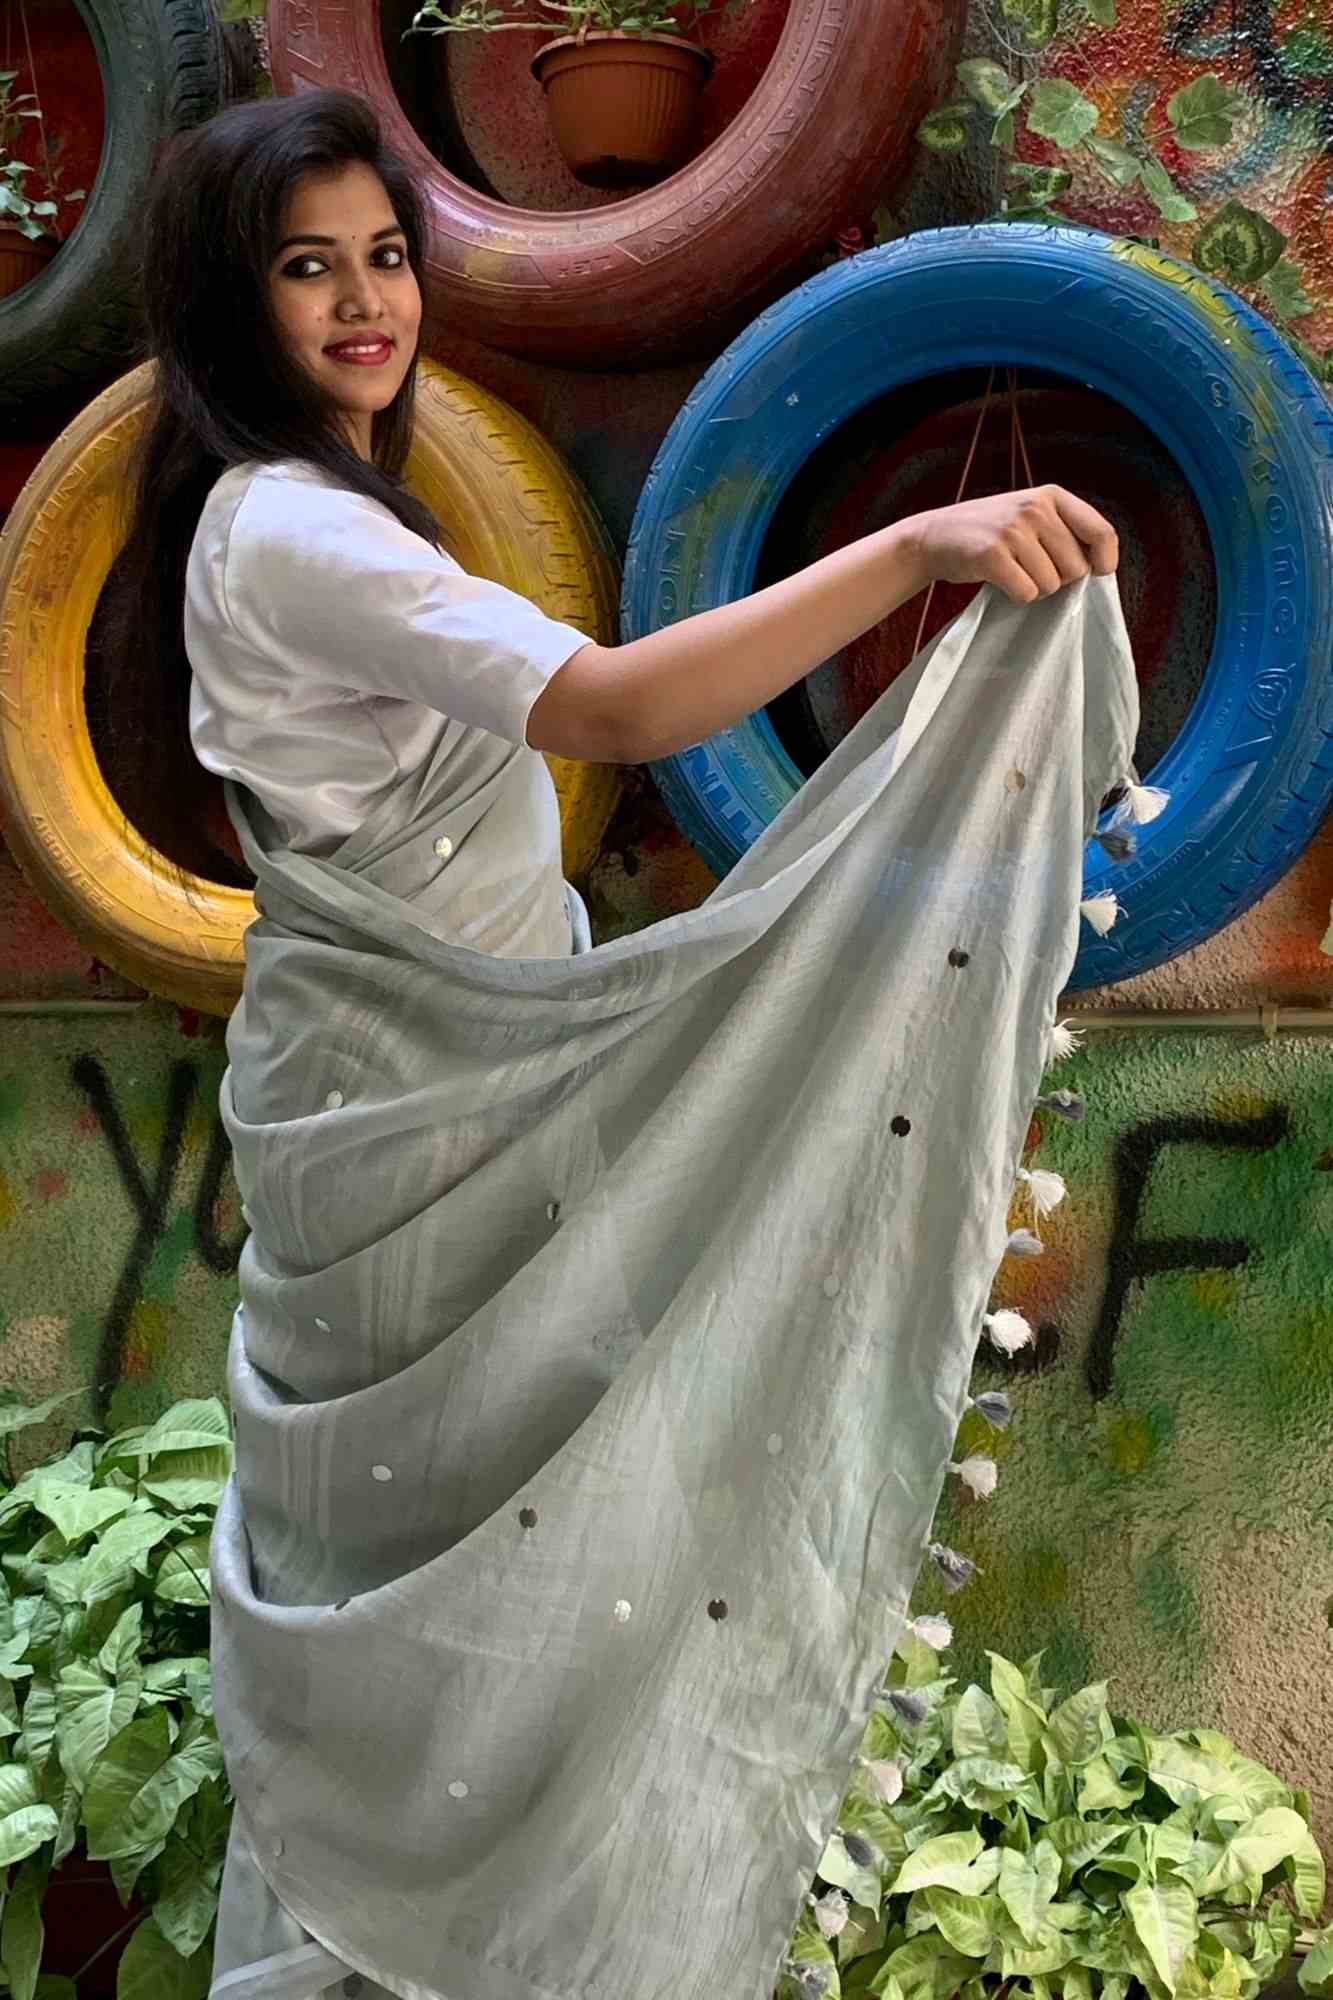 Silver bhagalpuri linen silk with chumki mirrors all over wrap in 1 minute saree